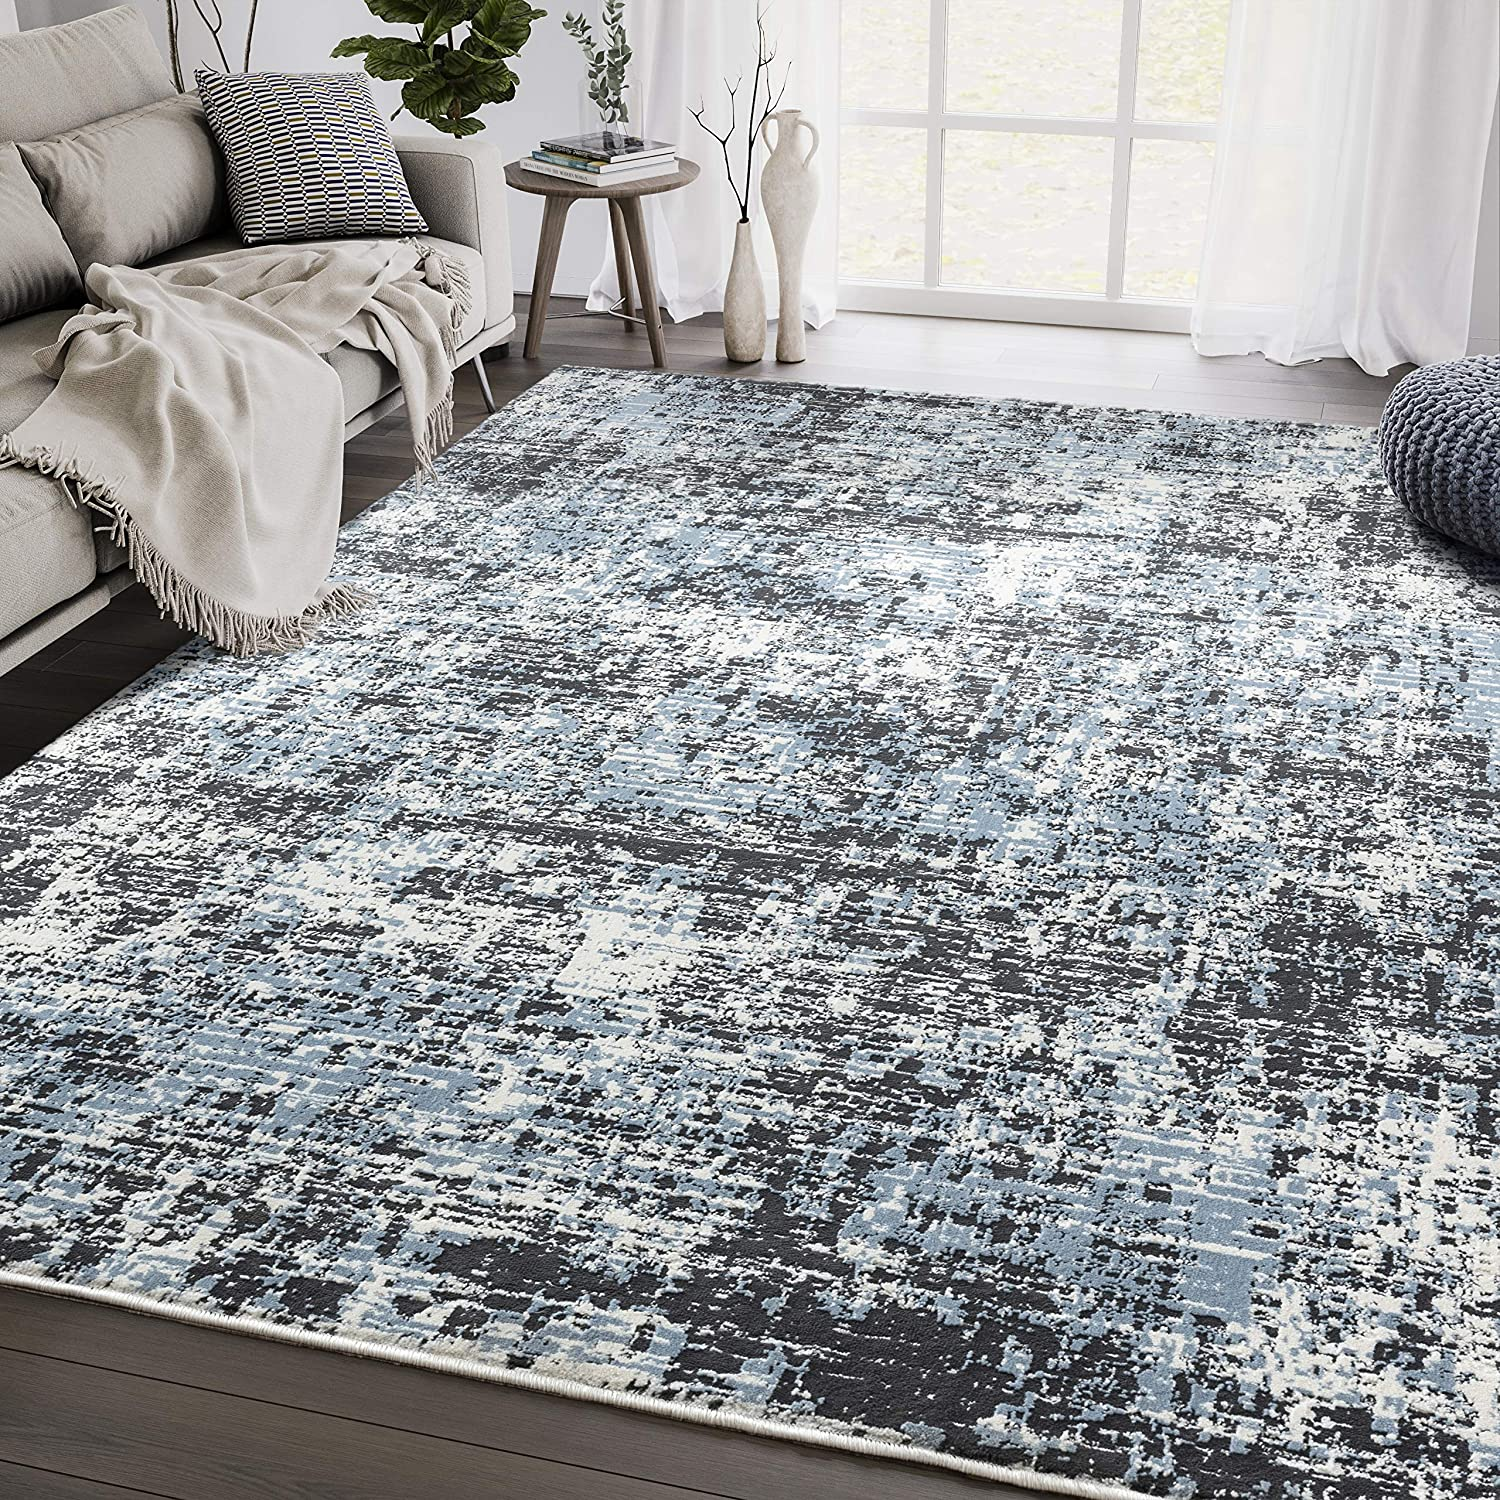 Black Blue Abstract 7'9'x10'2' Modern Rug Collecti Aspen Area Be super welcome San Antonio Mall